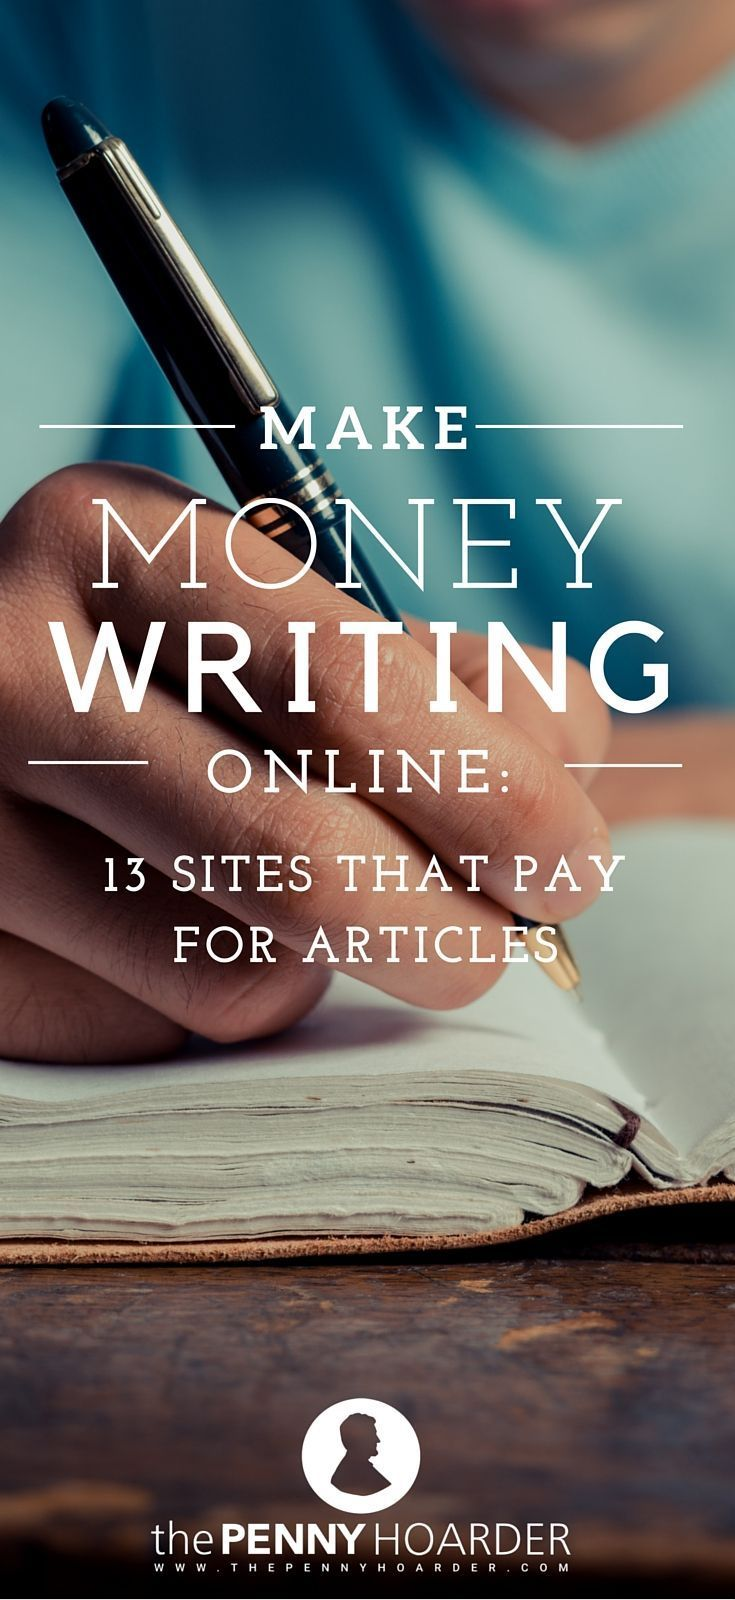 make money writing online sites that pay for articles write  make money writing online 13 sites that pay for articles